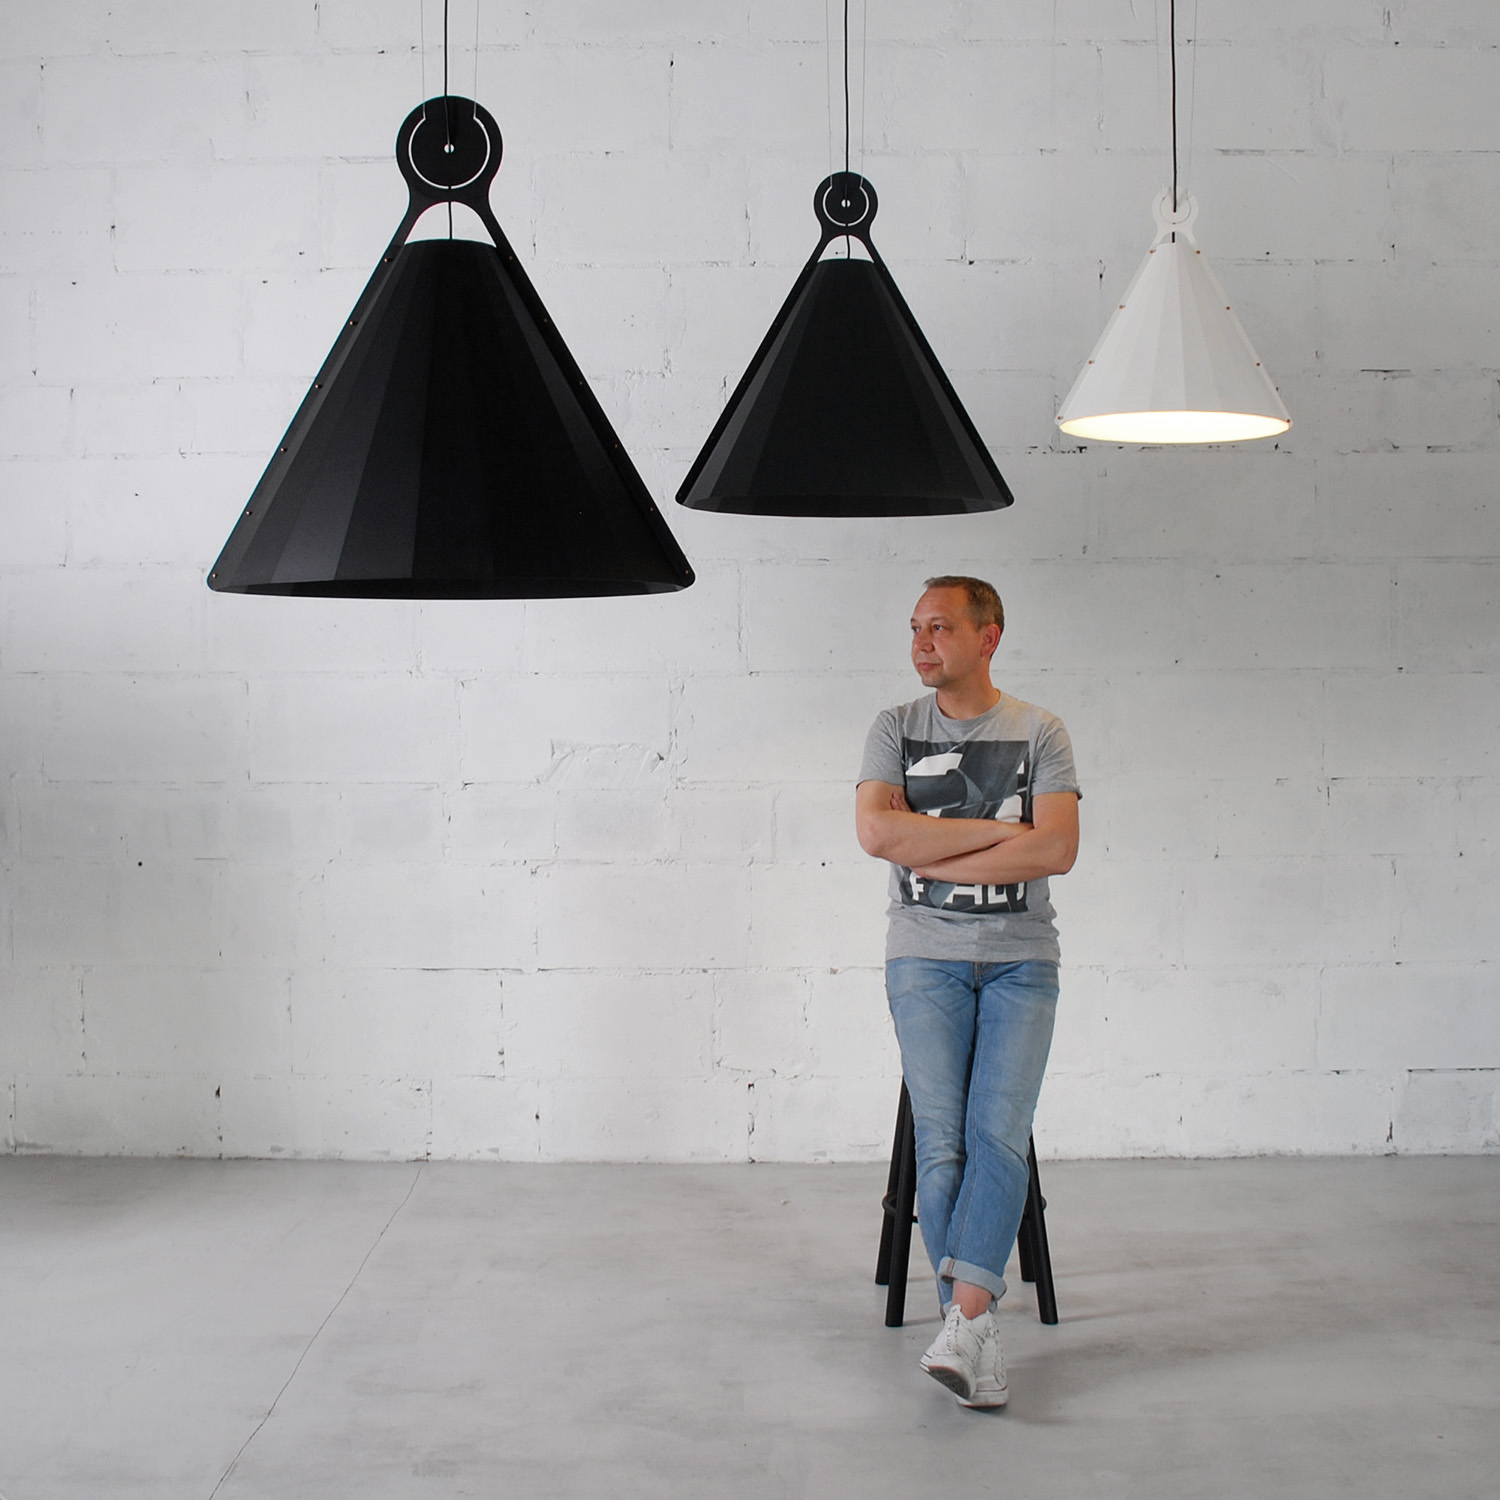 Bureau Designer The 15 77 Lamp Collection By Aleksej Iskos For Odesd2 Design